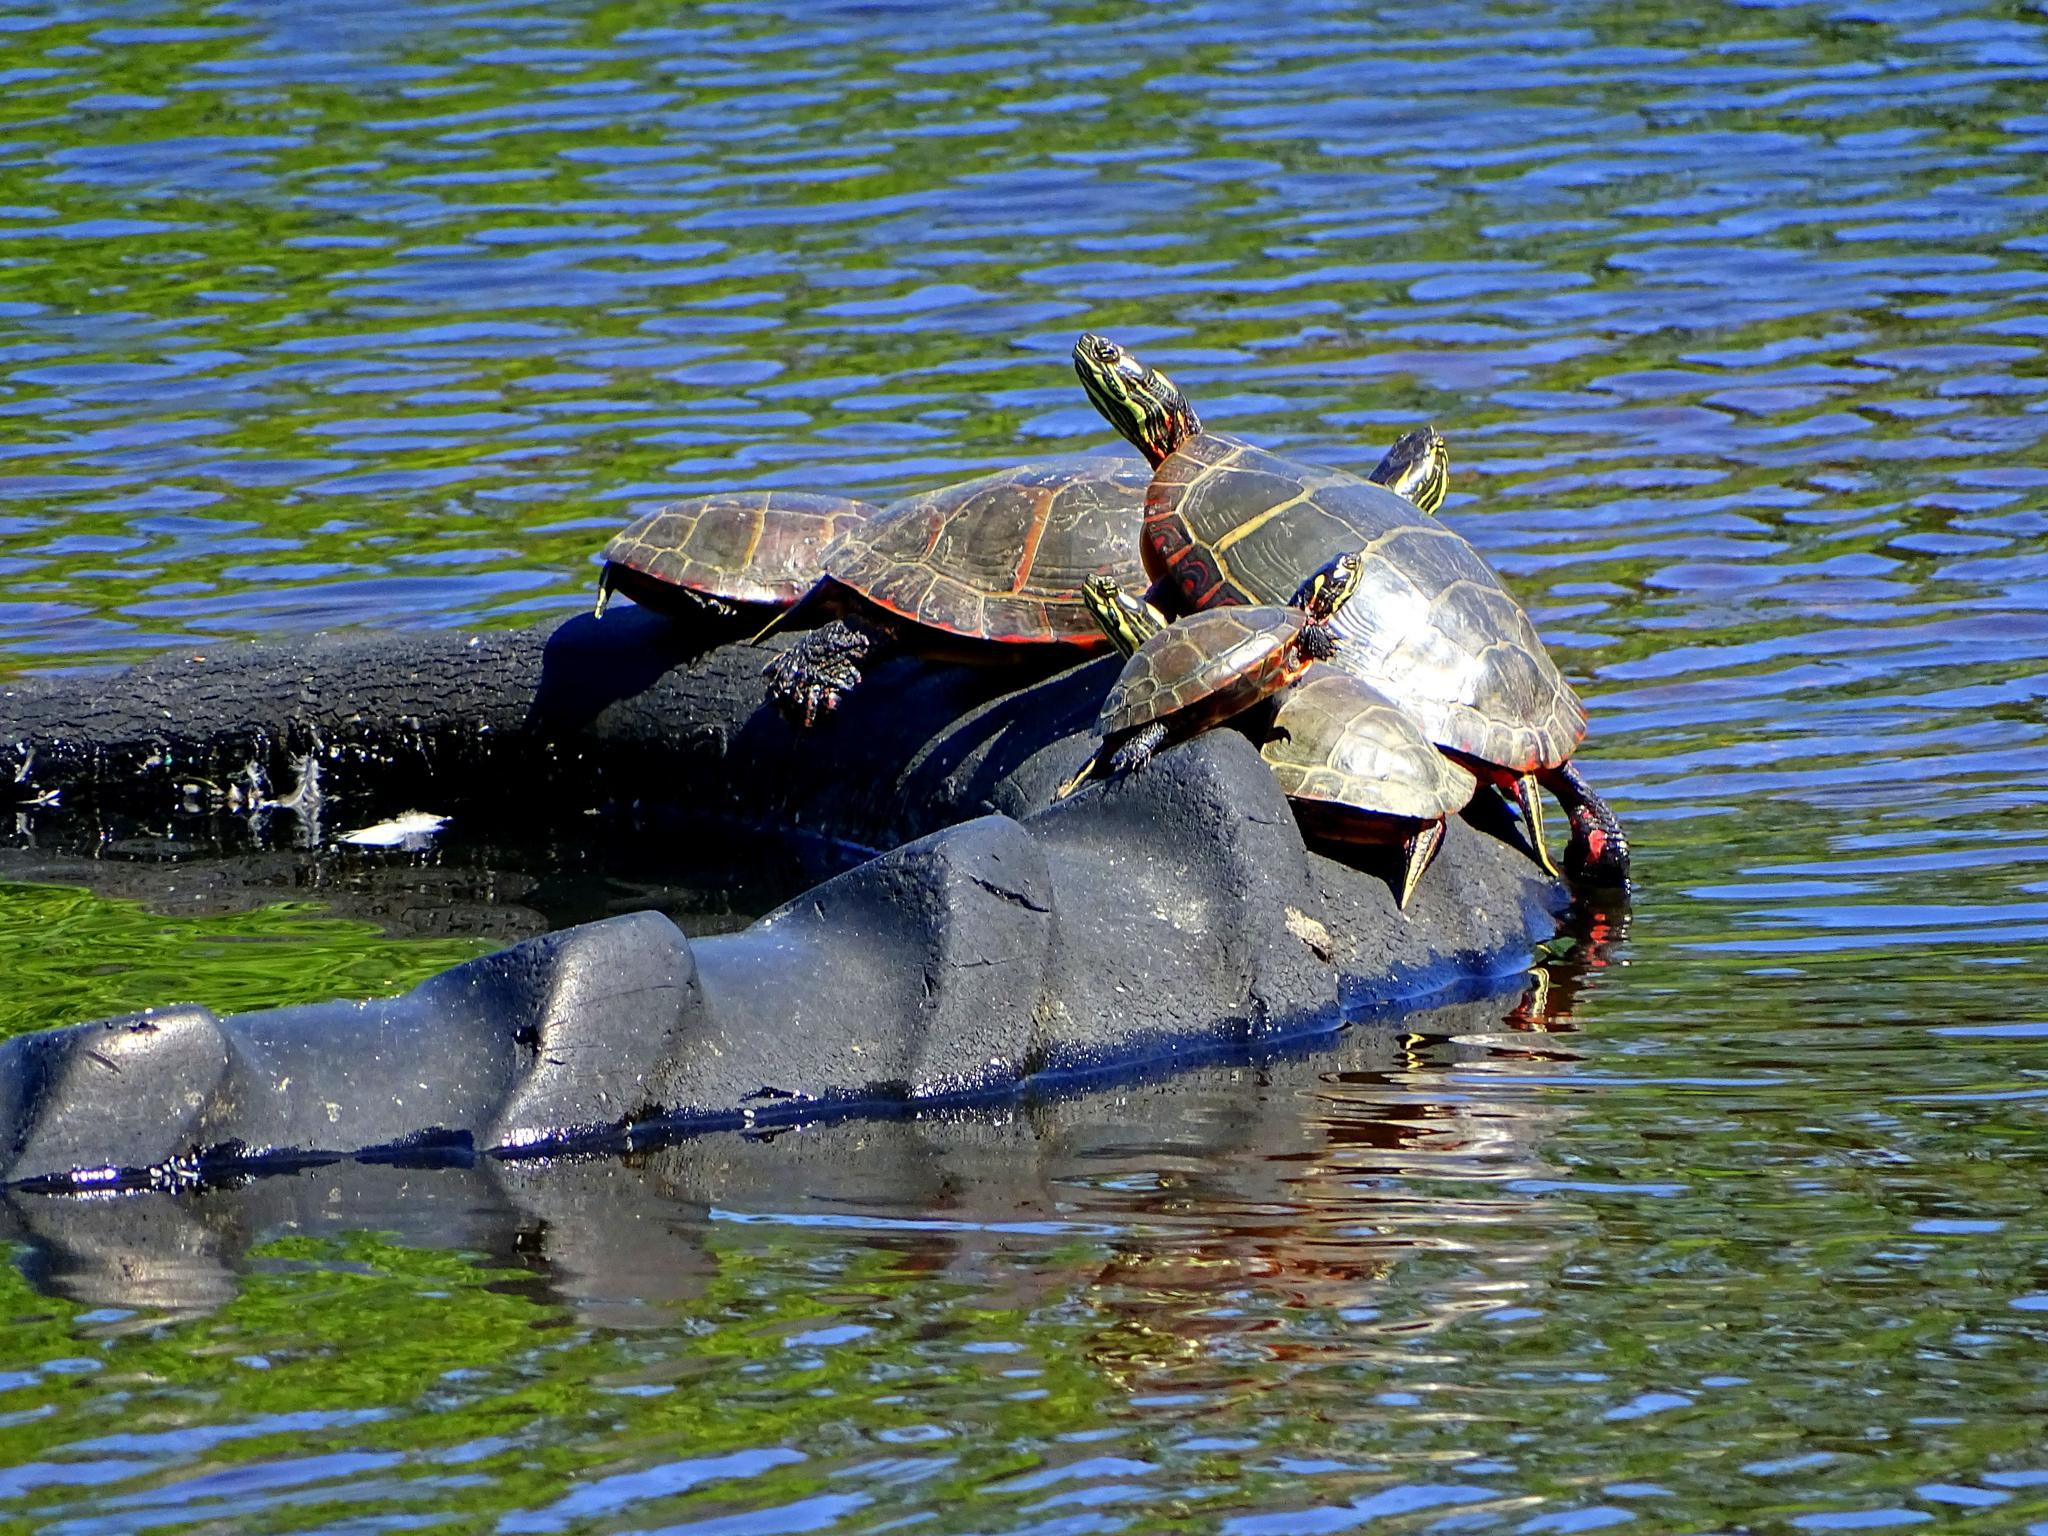 Painted Turtles Sunning on a Tire by paulette.king